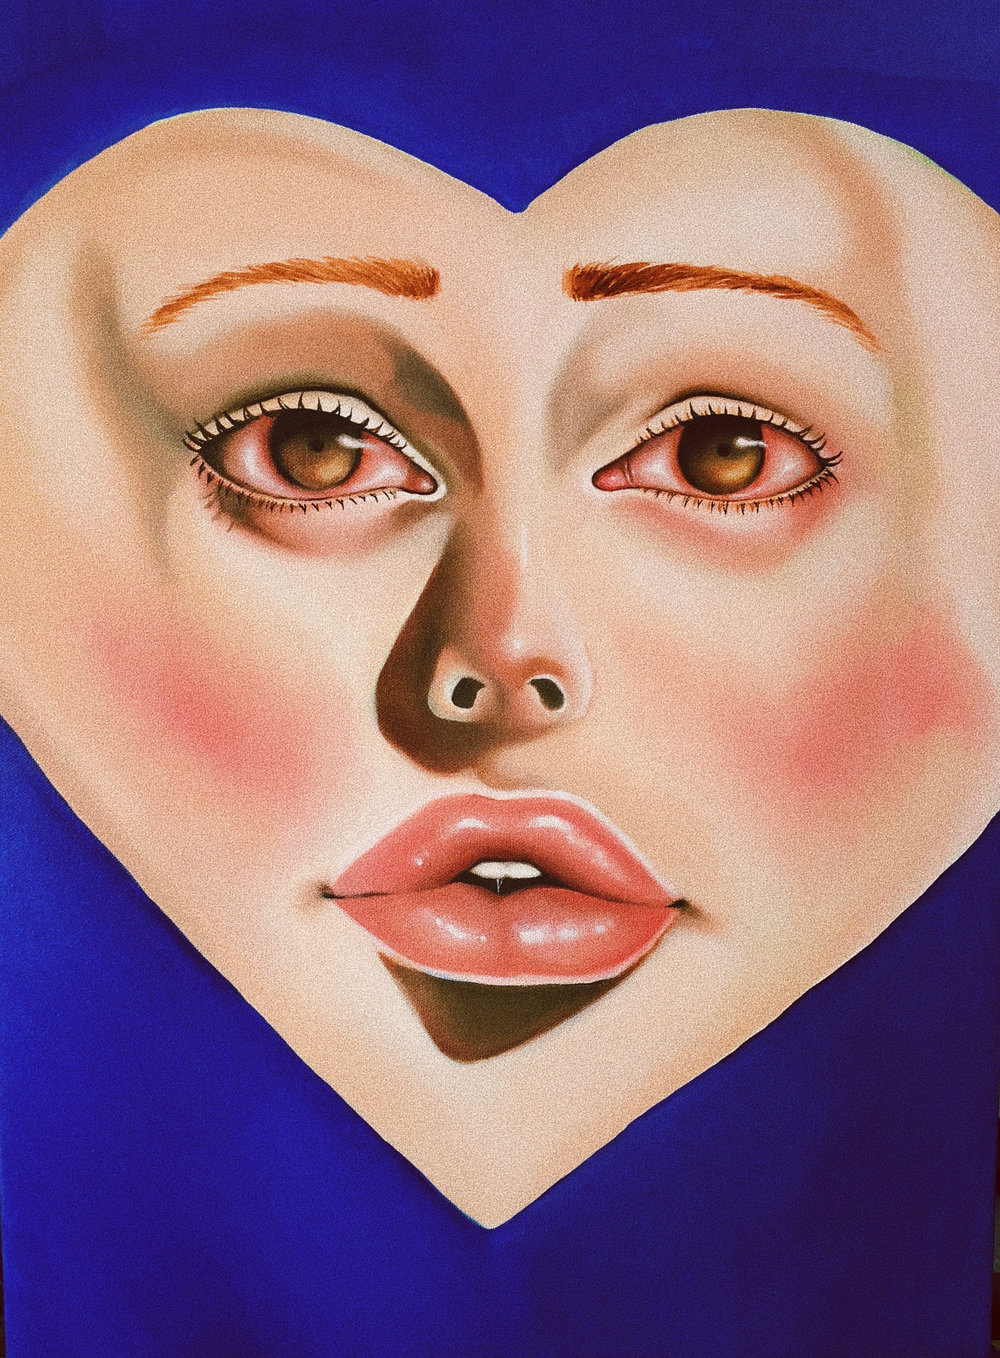 Lover in Blue - Kaitlyn Wallace 2018 | Oil Painting